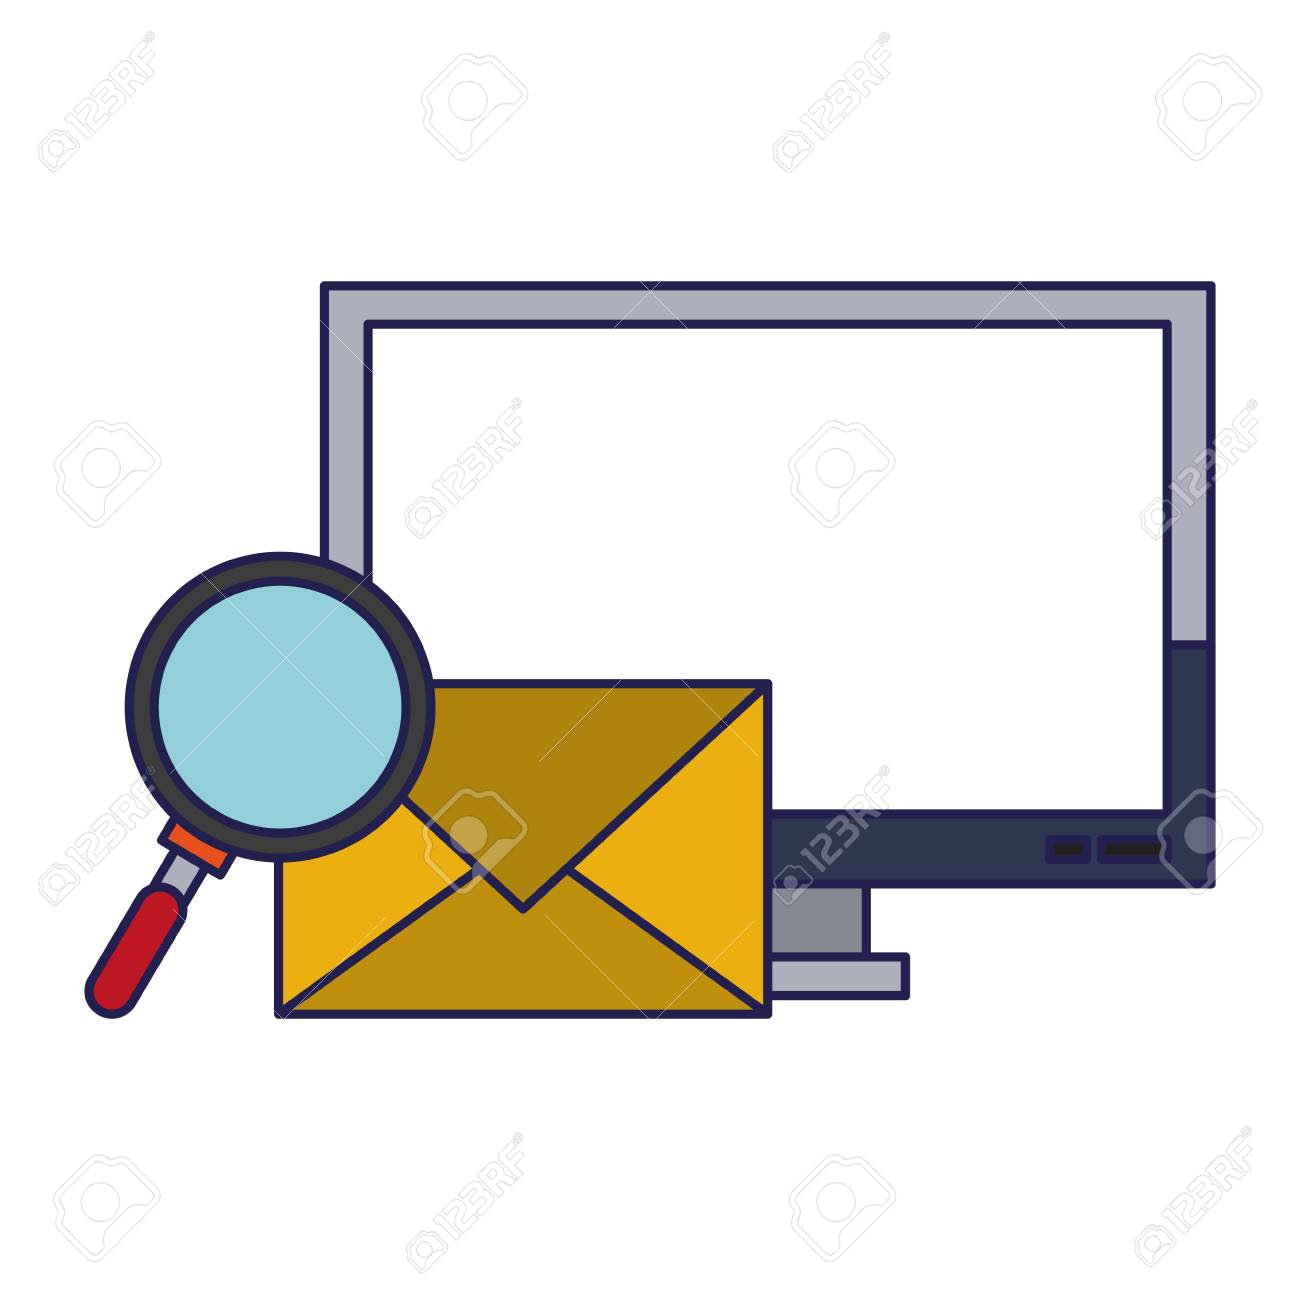 Computer email search business correspondance vector illustration graphic desing - 122853057